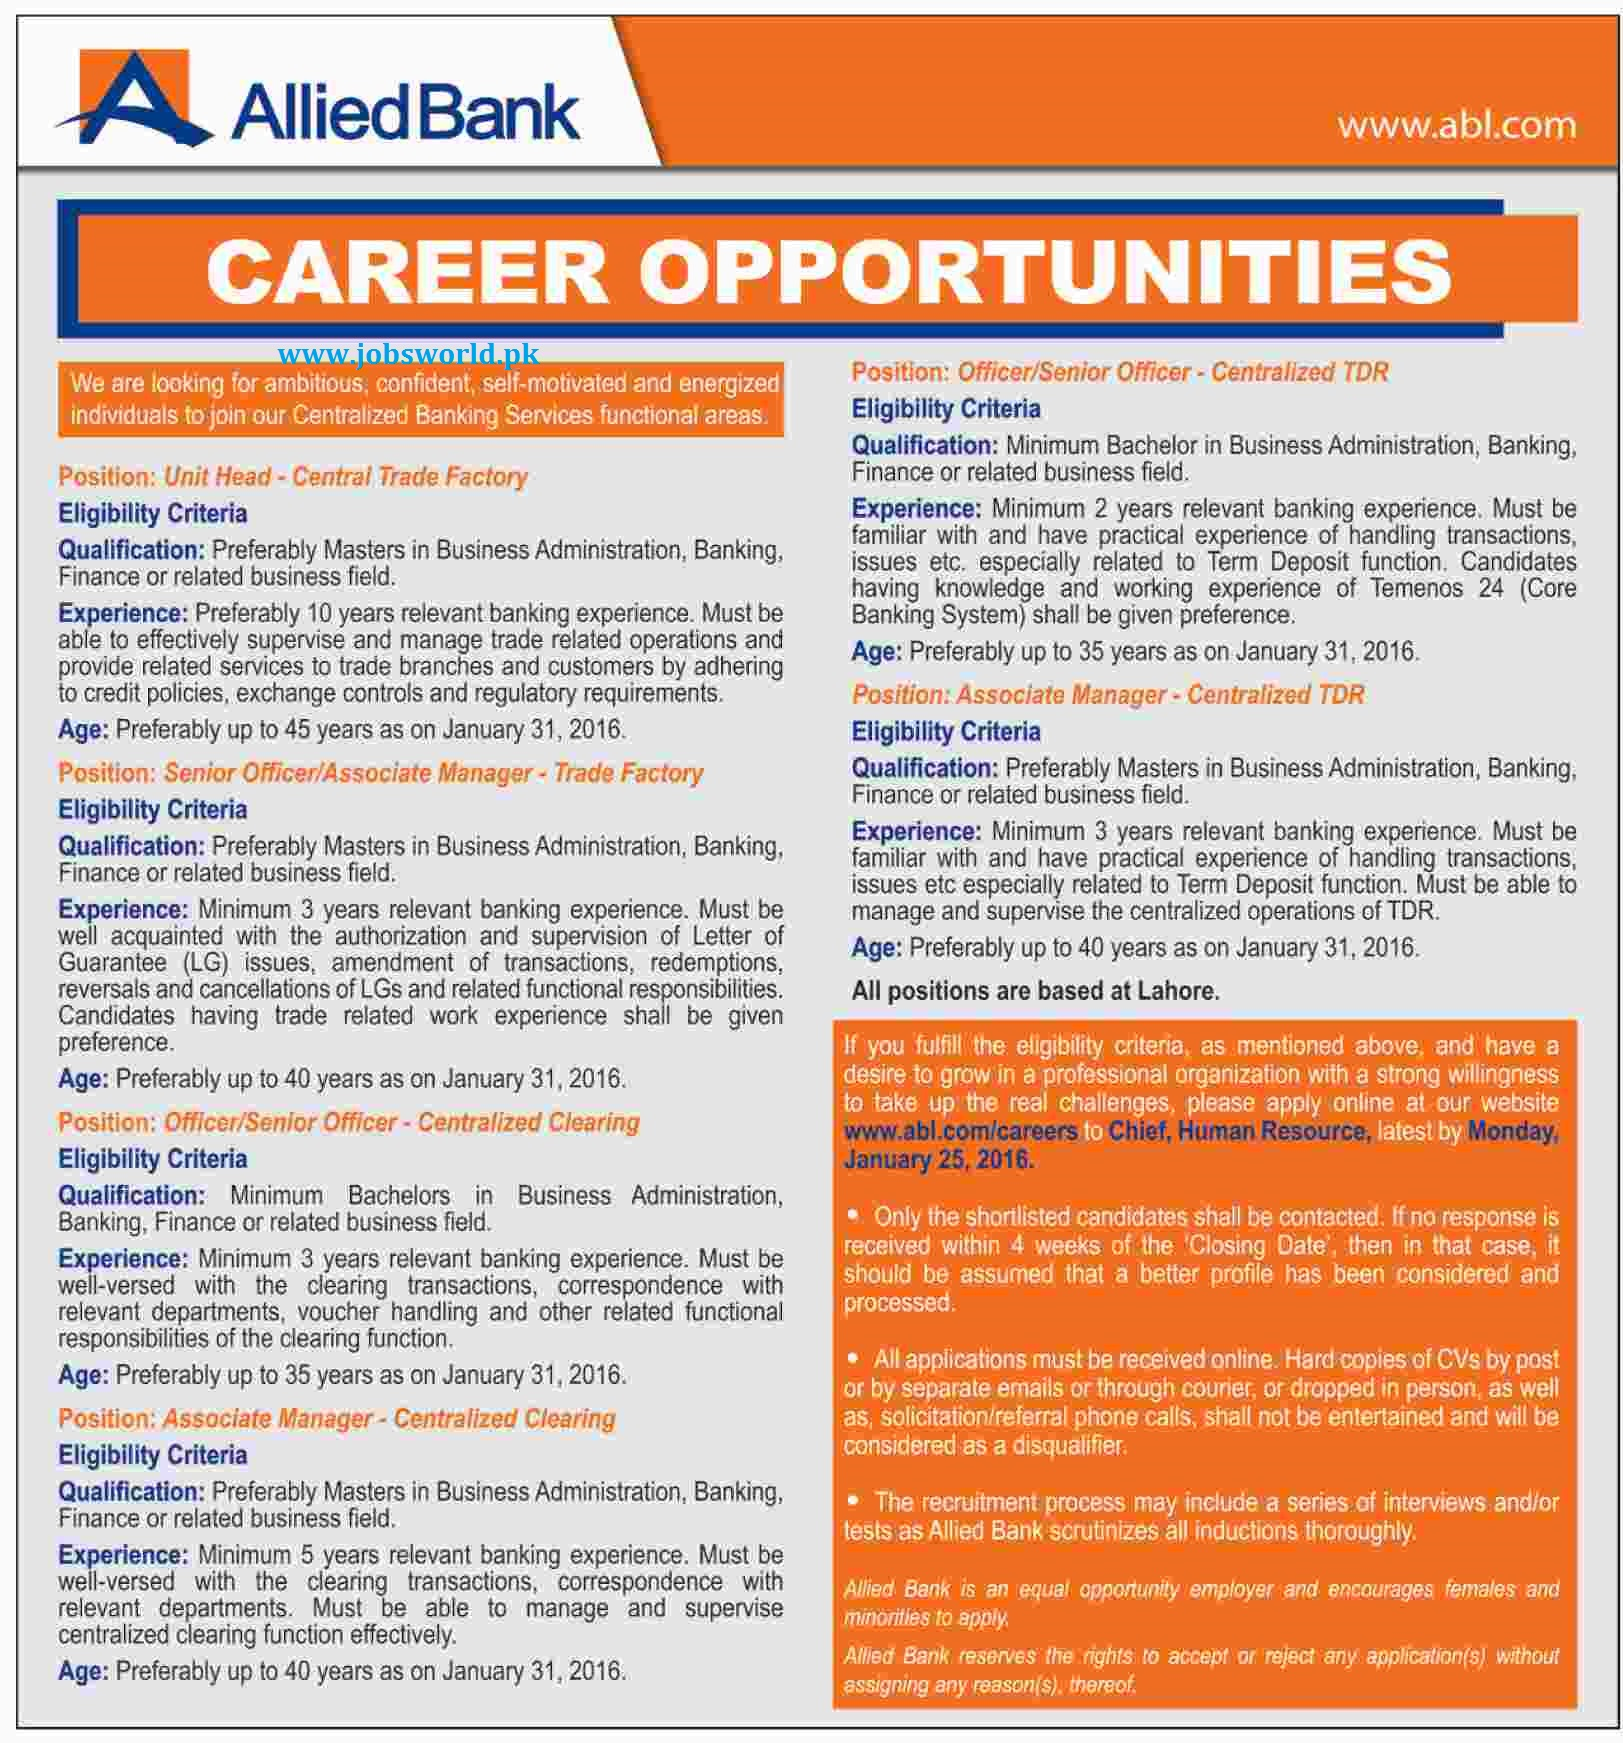 allied bank limited jobs abl latest apply online jobsworld job notice officially published advertisement